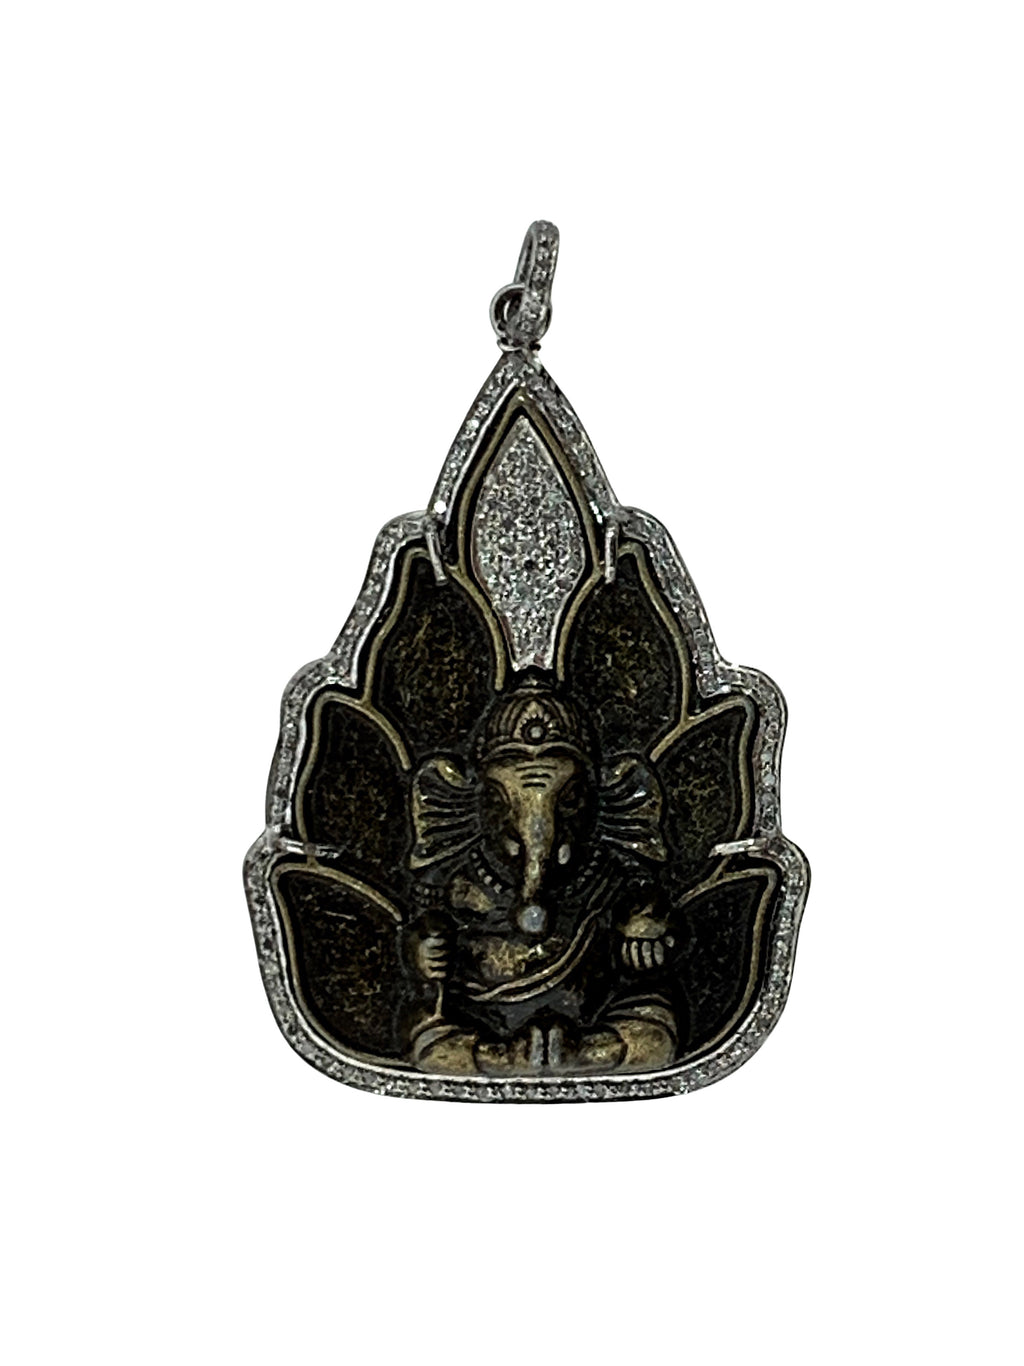 Pave Diamonds around Bronze Ganesh